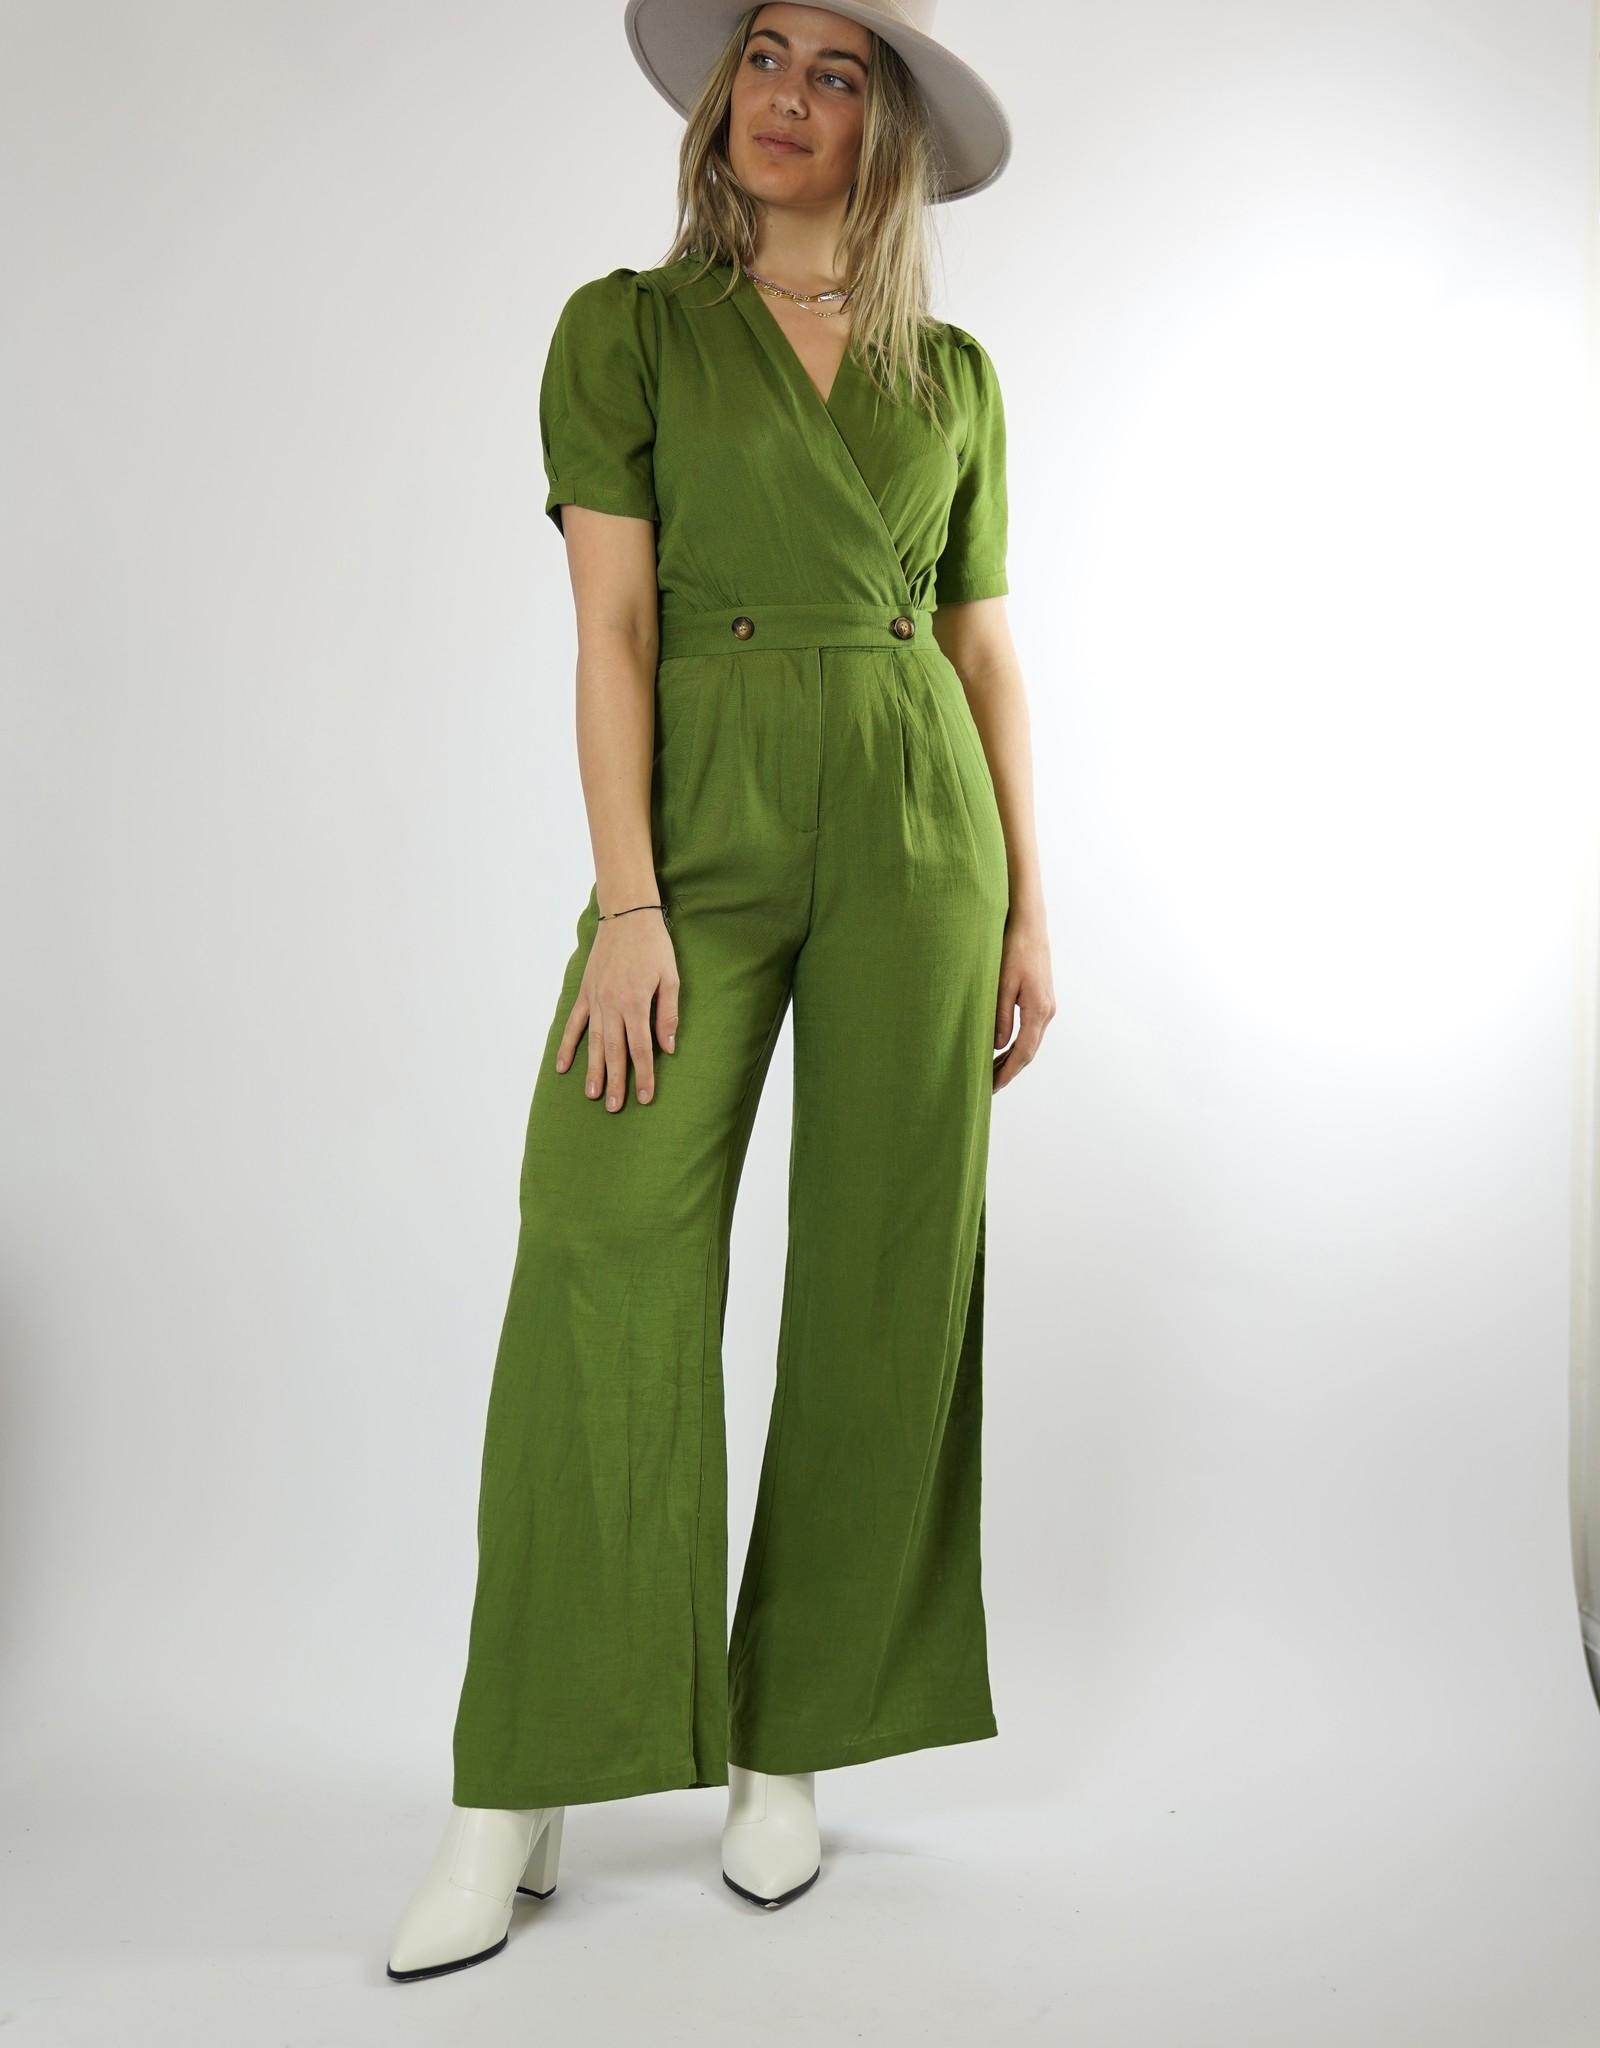 FRNCH FRNCH-Marianne Jumpsuit